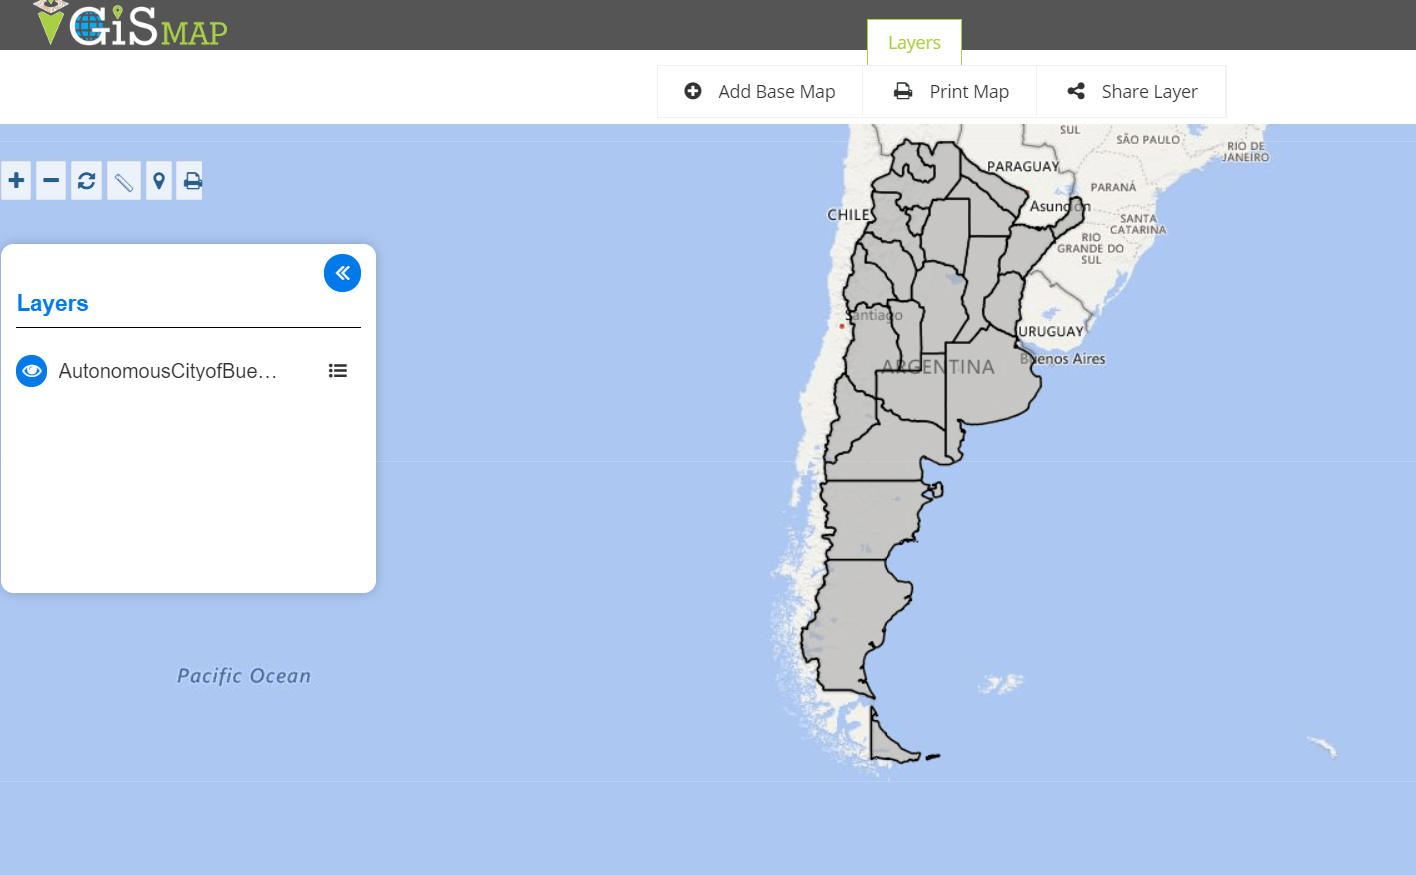 Convert shapefile to geojson